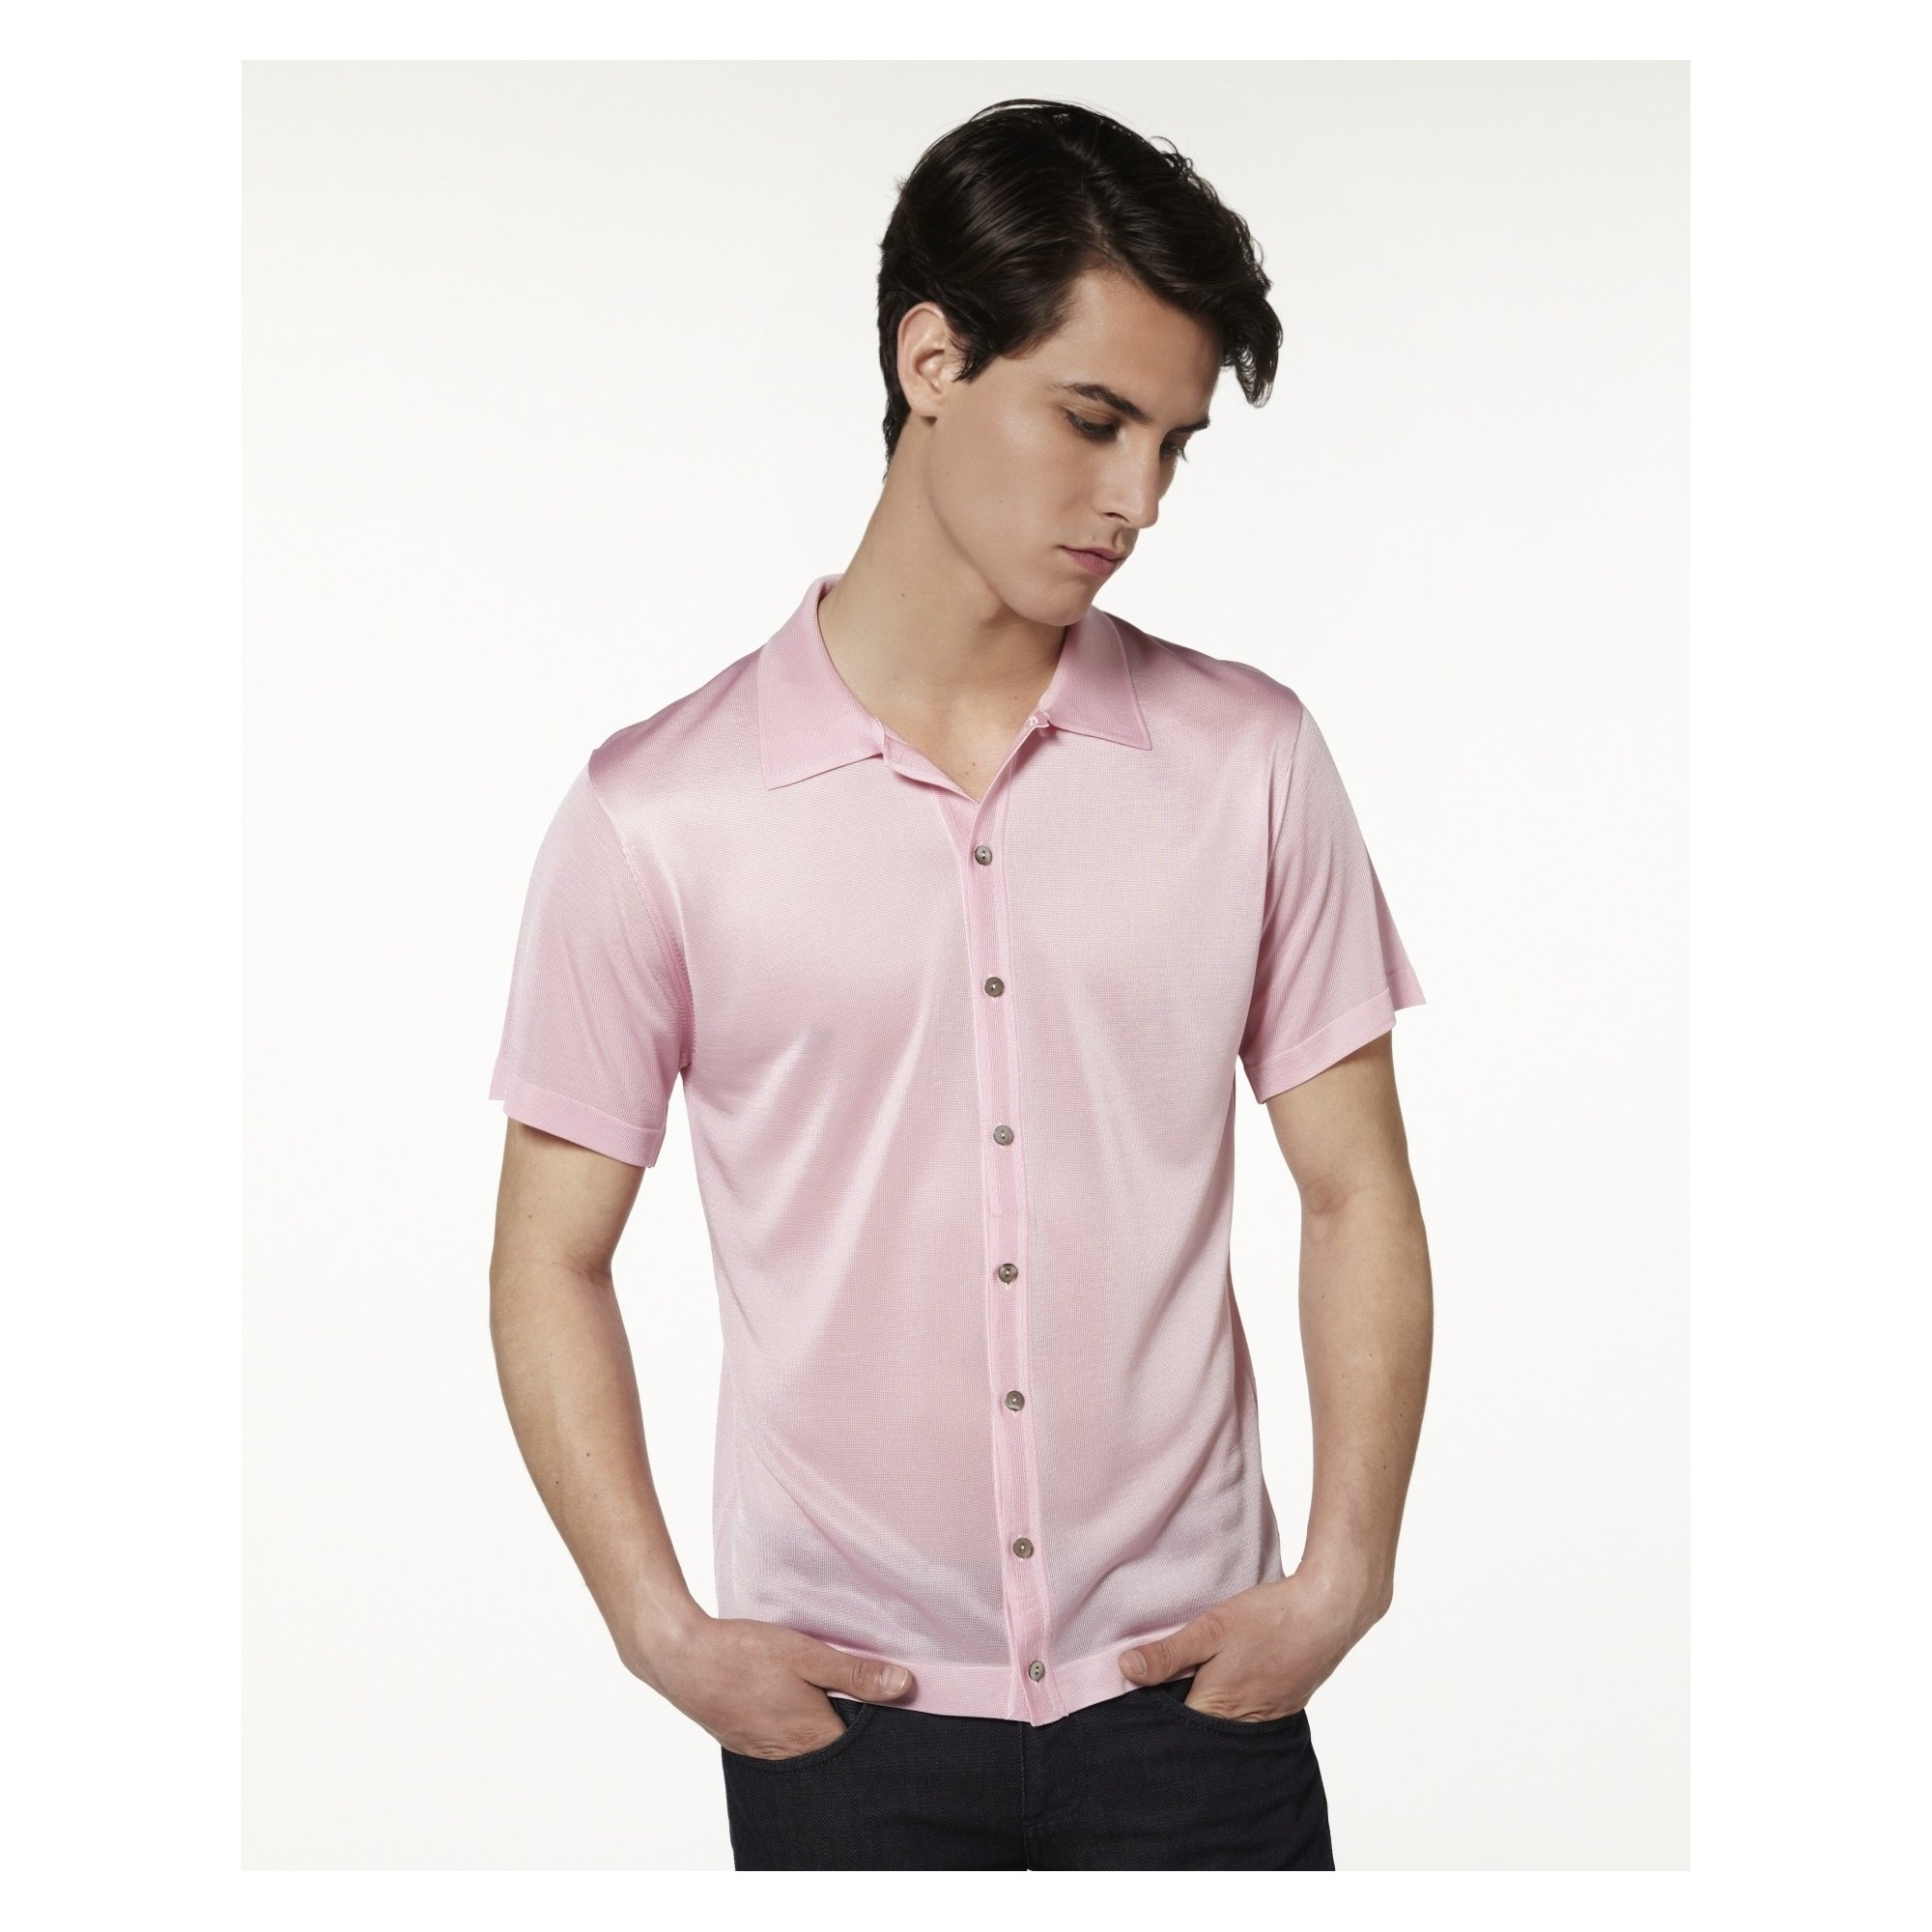 brice tee shirt homme manches courtes